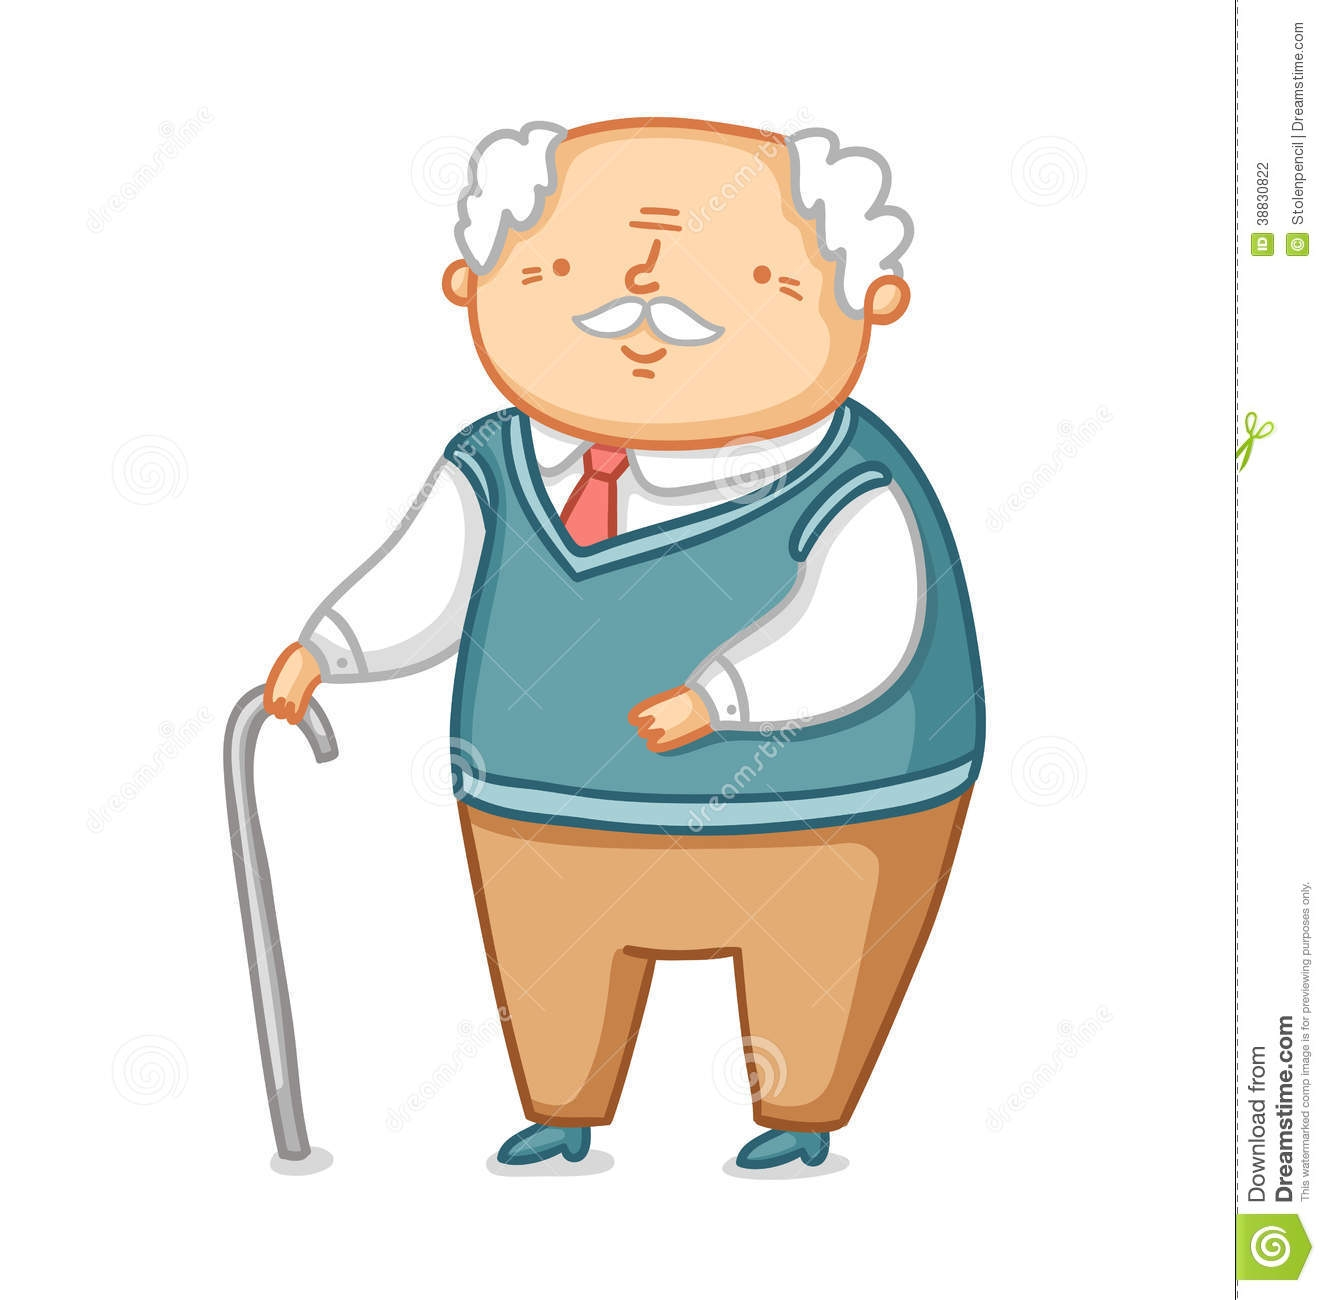 Grandfather clip art.